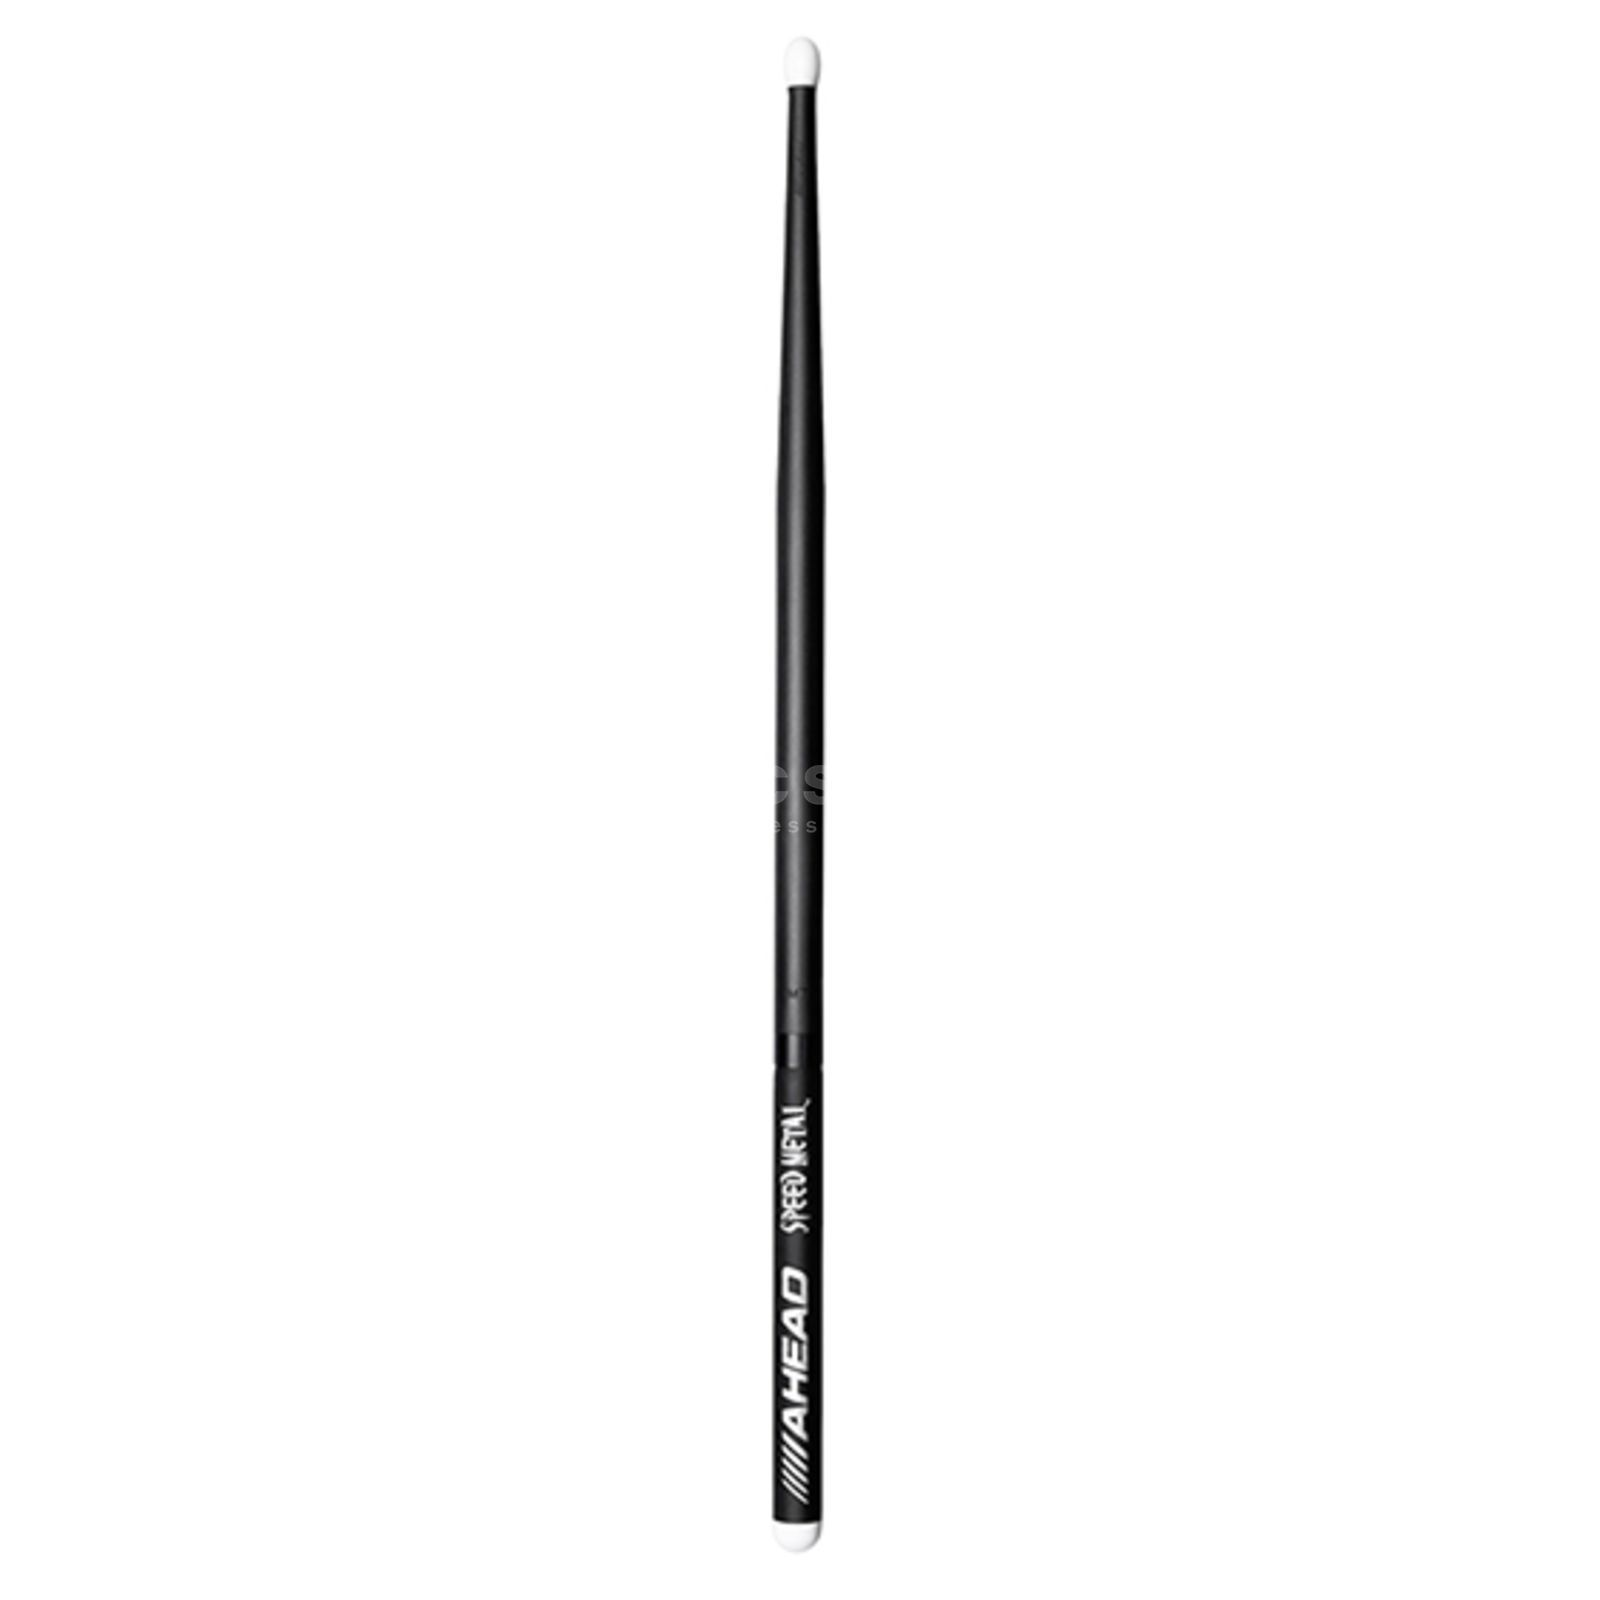 Ahead Sticks Speedmetal Aluminium Sticks JJ1, Medium Taper Product Image